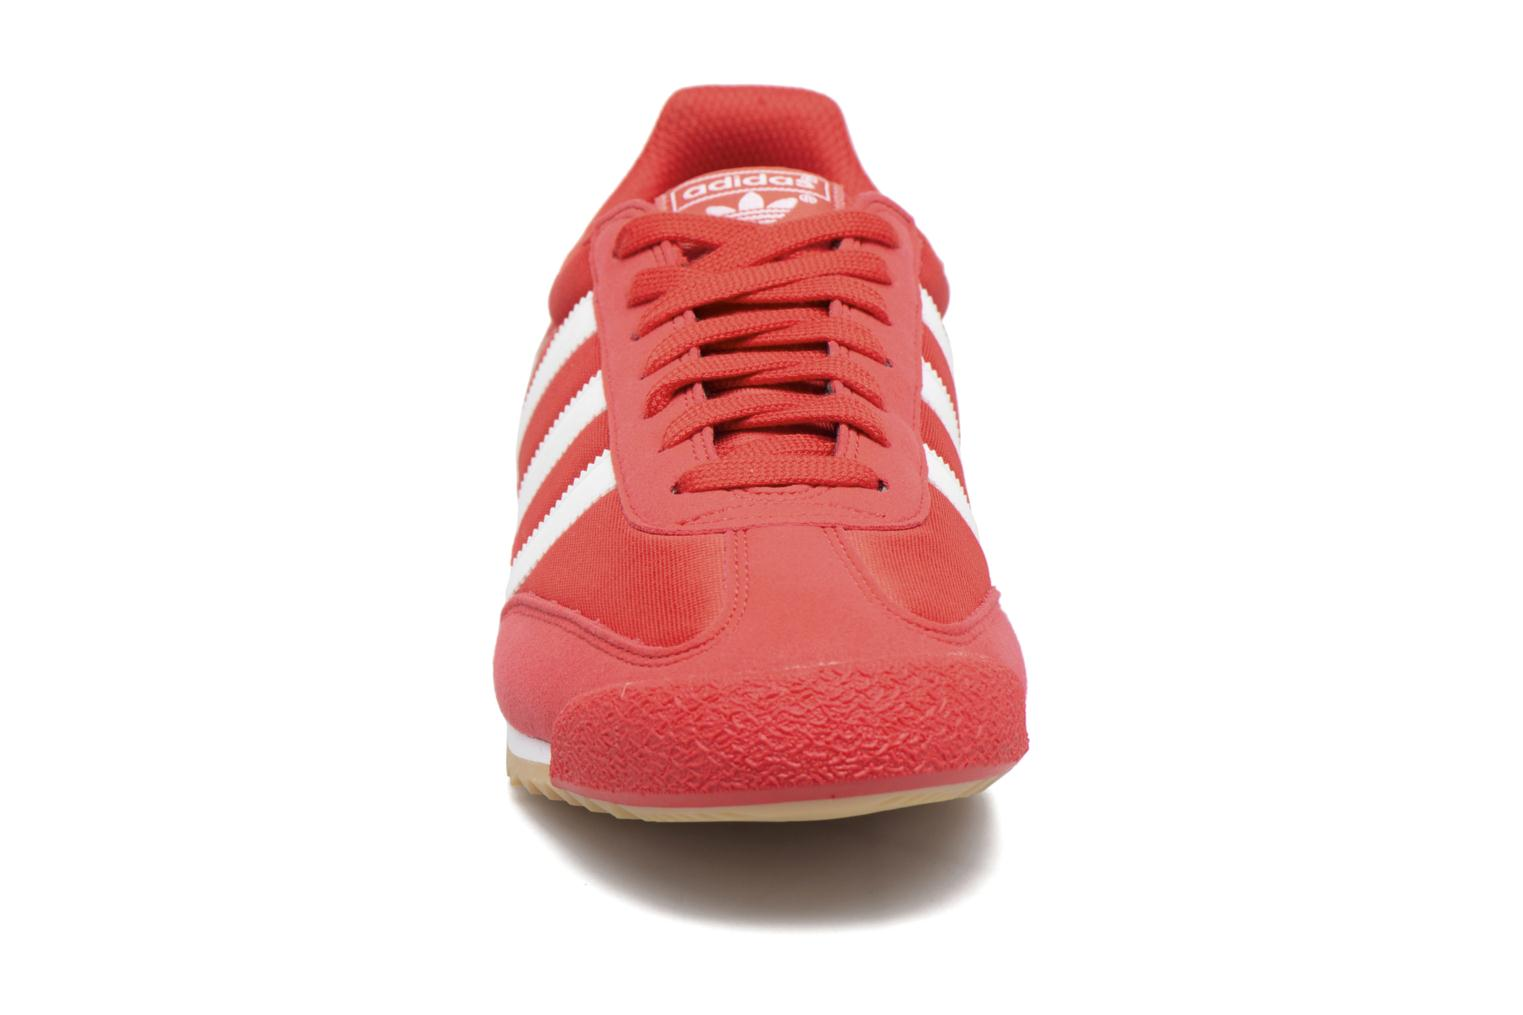 Rouge/Ftwbla/Gomme3 Adidas Originals Dragon Og (Rouge)